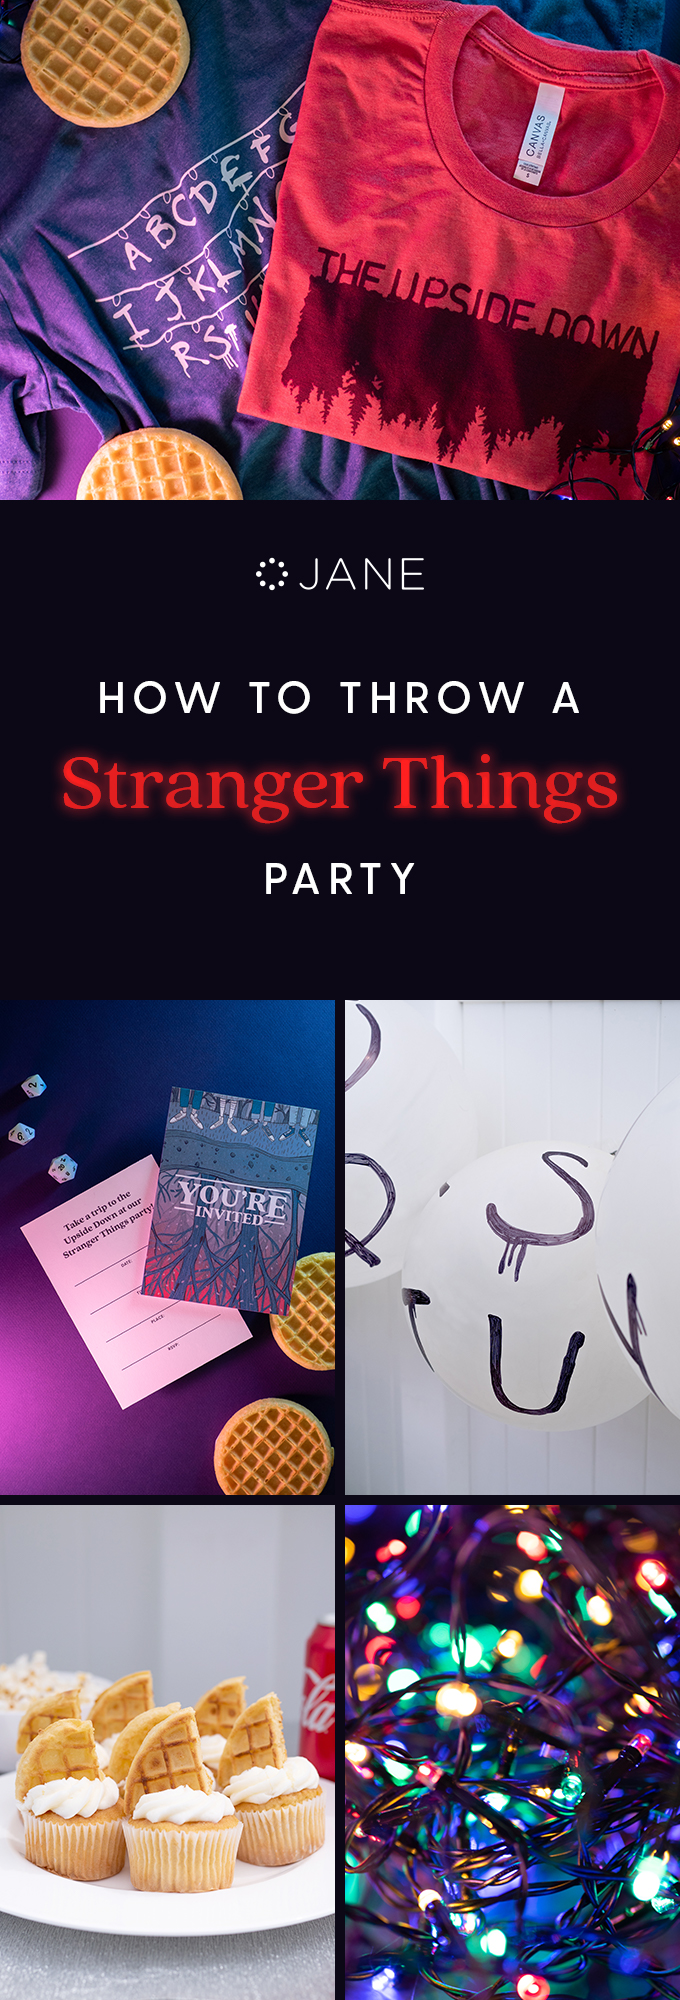 stranger-things-party-pinnable-image